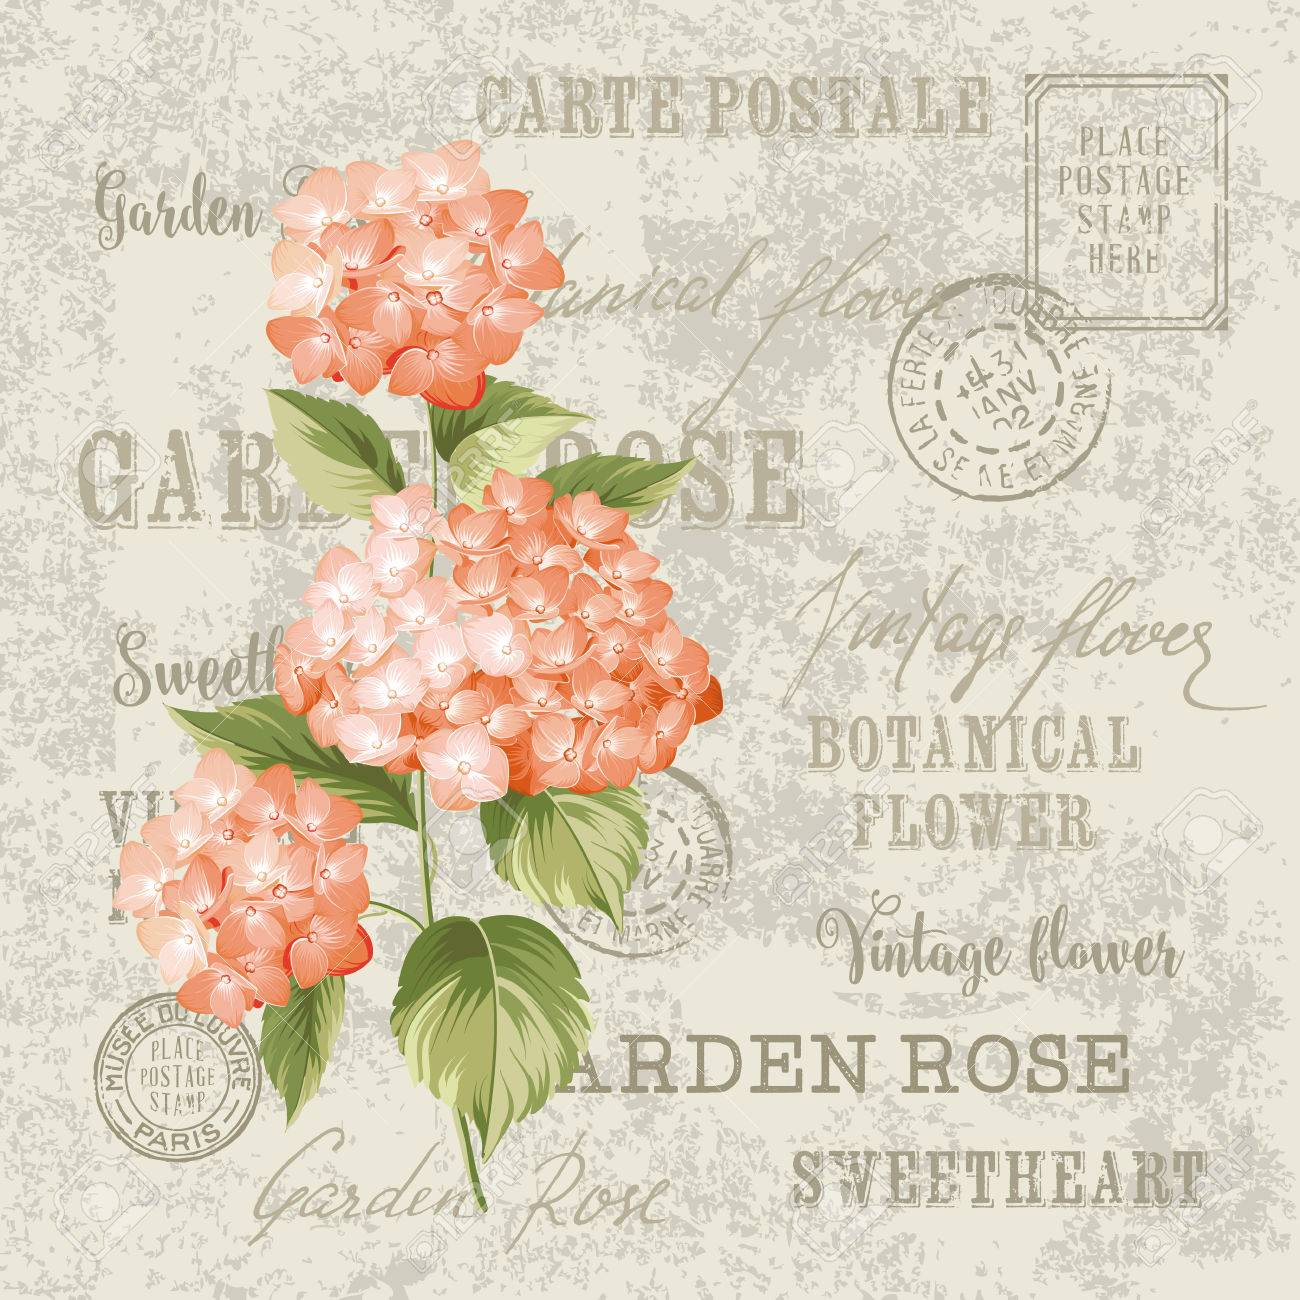 Red flowers design for invtation card template. Vintage postcard background vector template for wedding invitation. Label with hortensia flowers. Stock Vector - 49346900